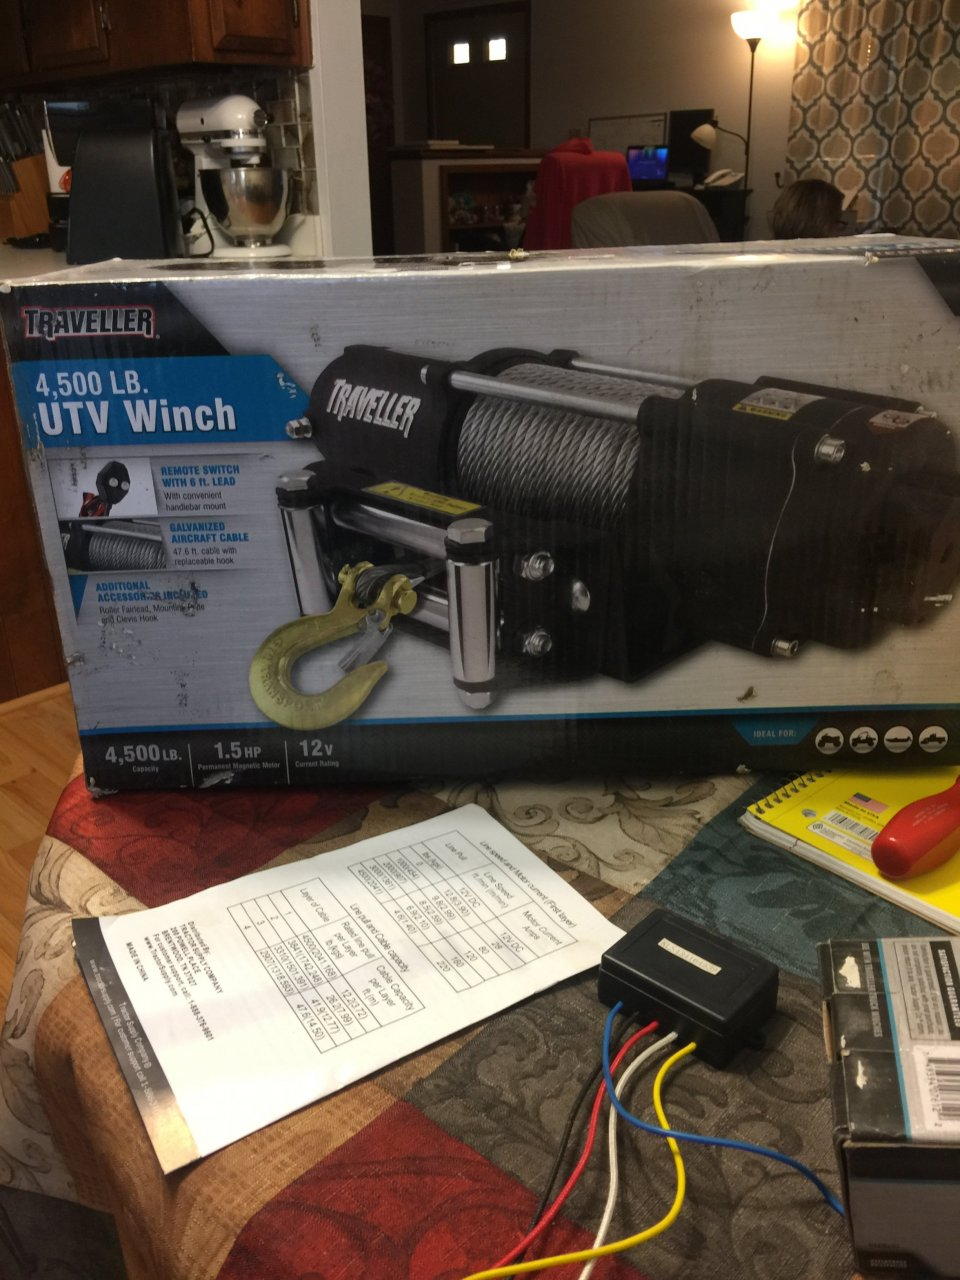 I have a traveller 4500 lb winch model # 1078311 and need to know how to  hook up a wireless remote control made by traveller model # 1078310 wiring  ...